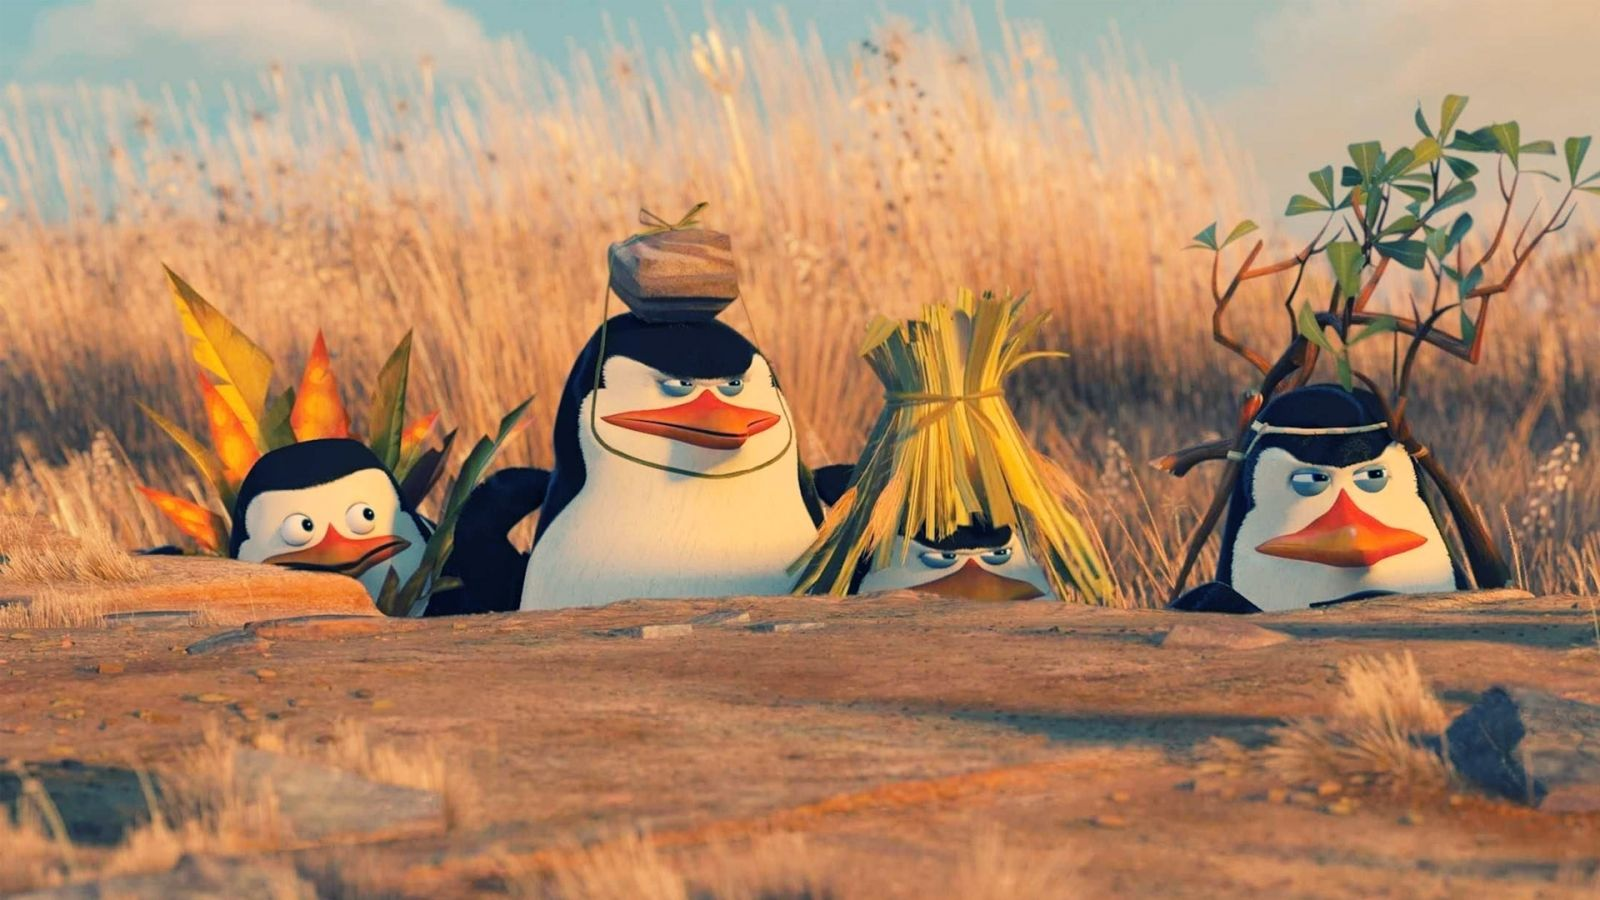 madagascar penguins you didn't see anything gif - google search